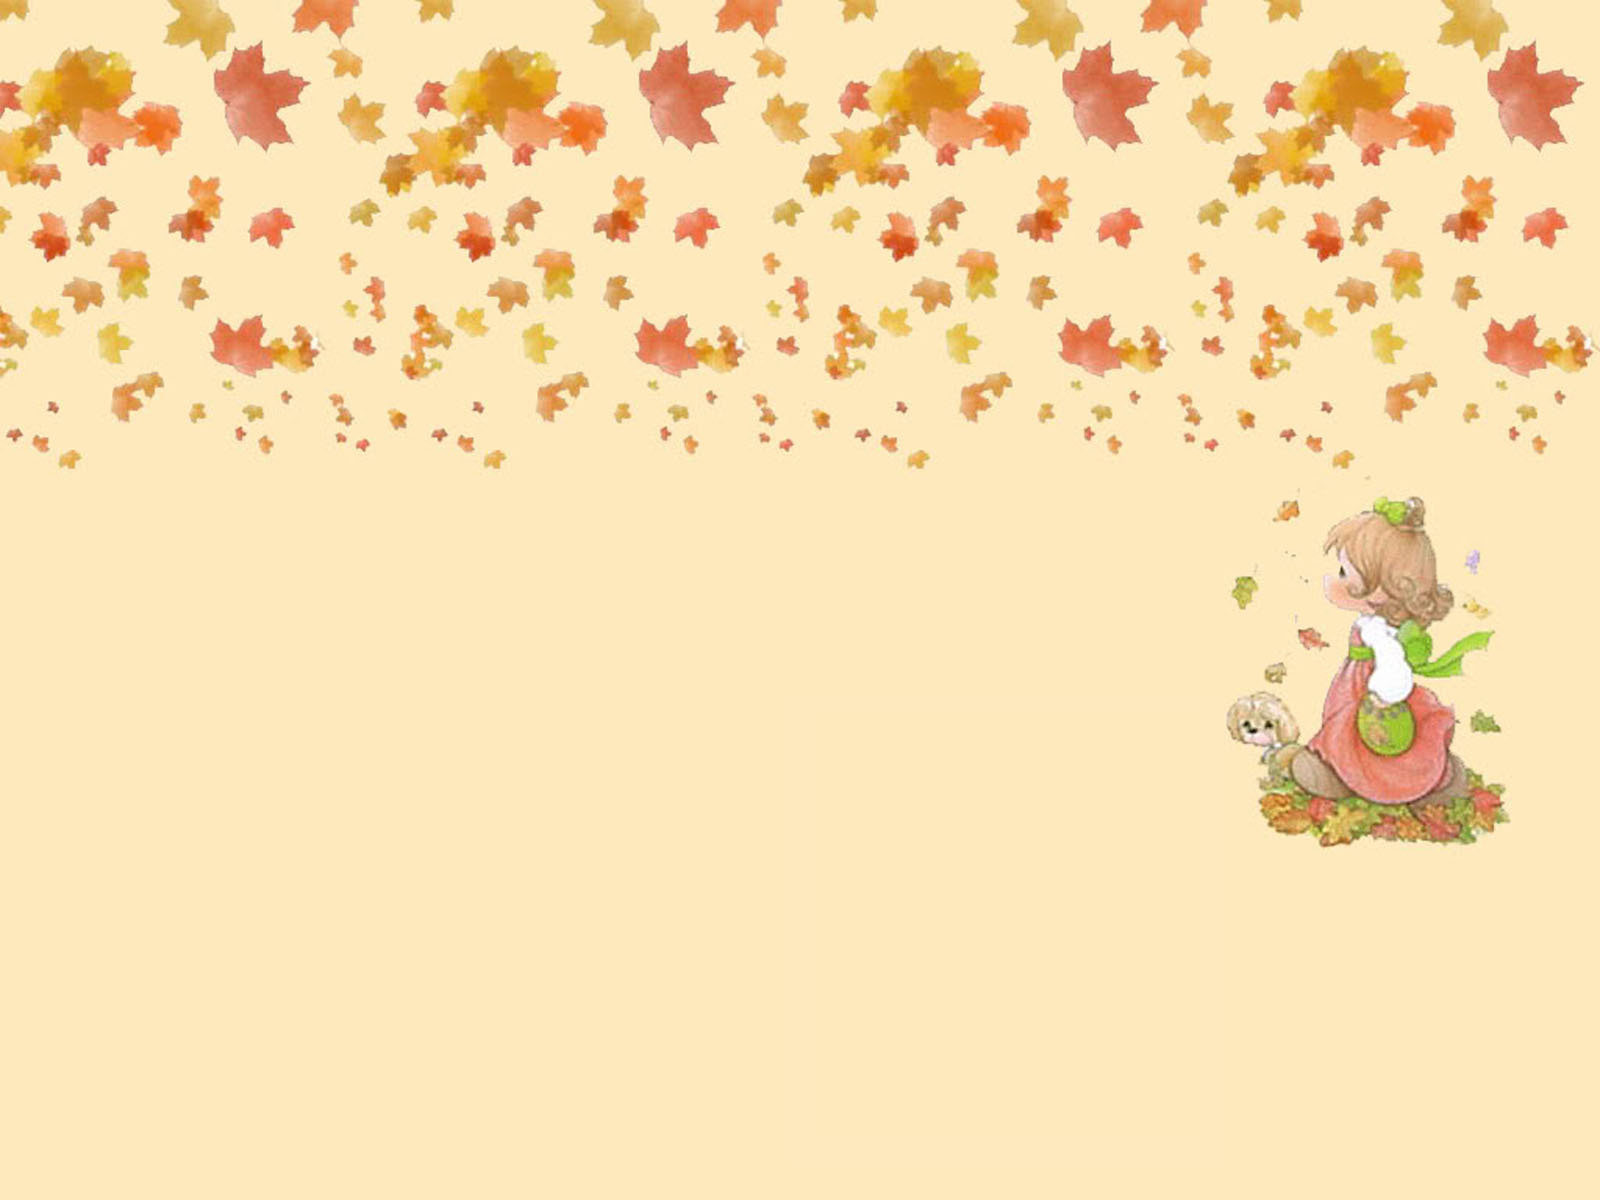 44 Precious Moments Thanksgiving Wallpaper On